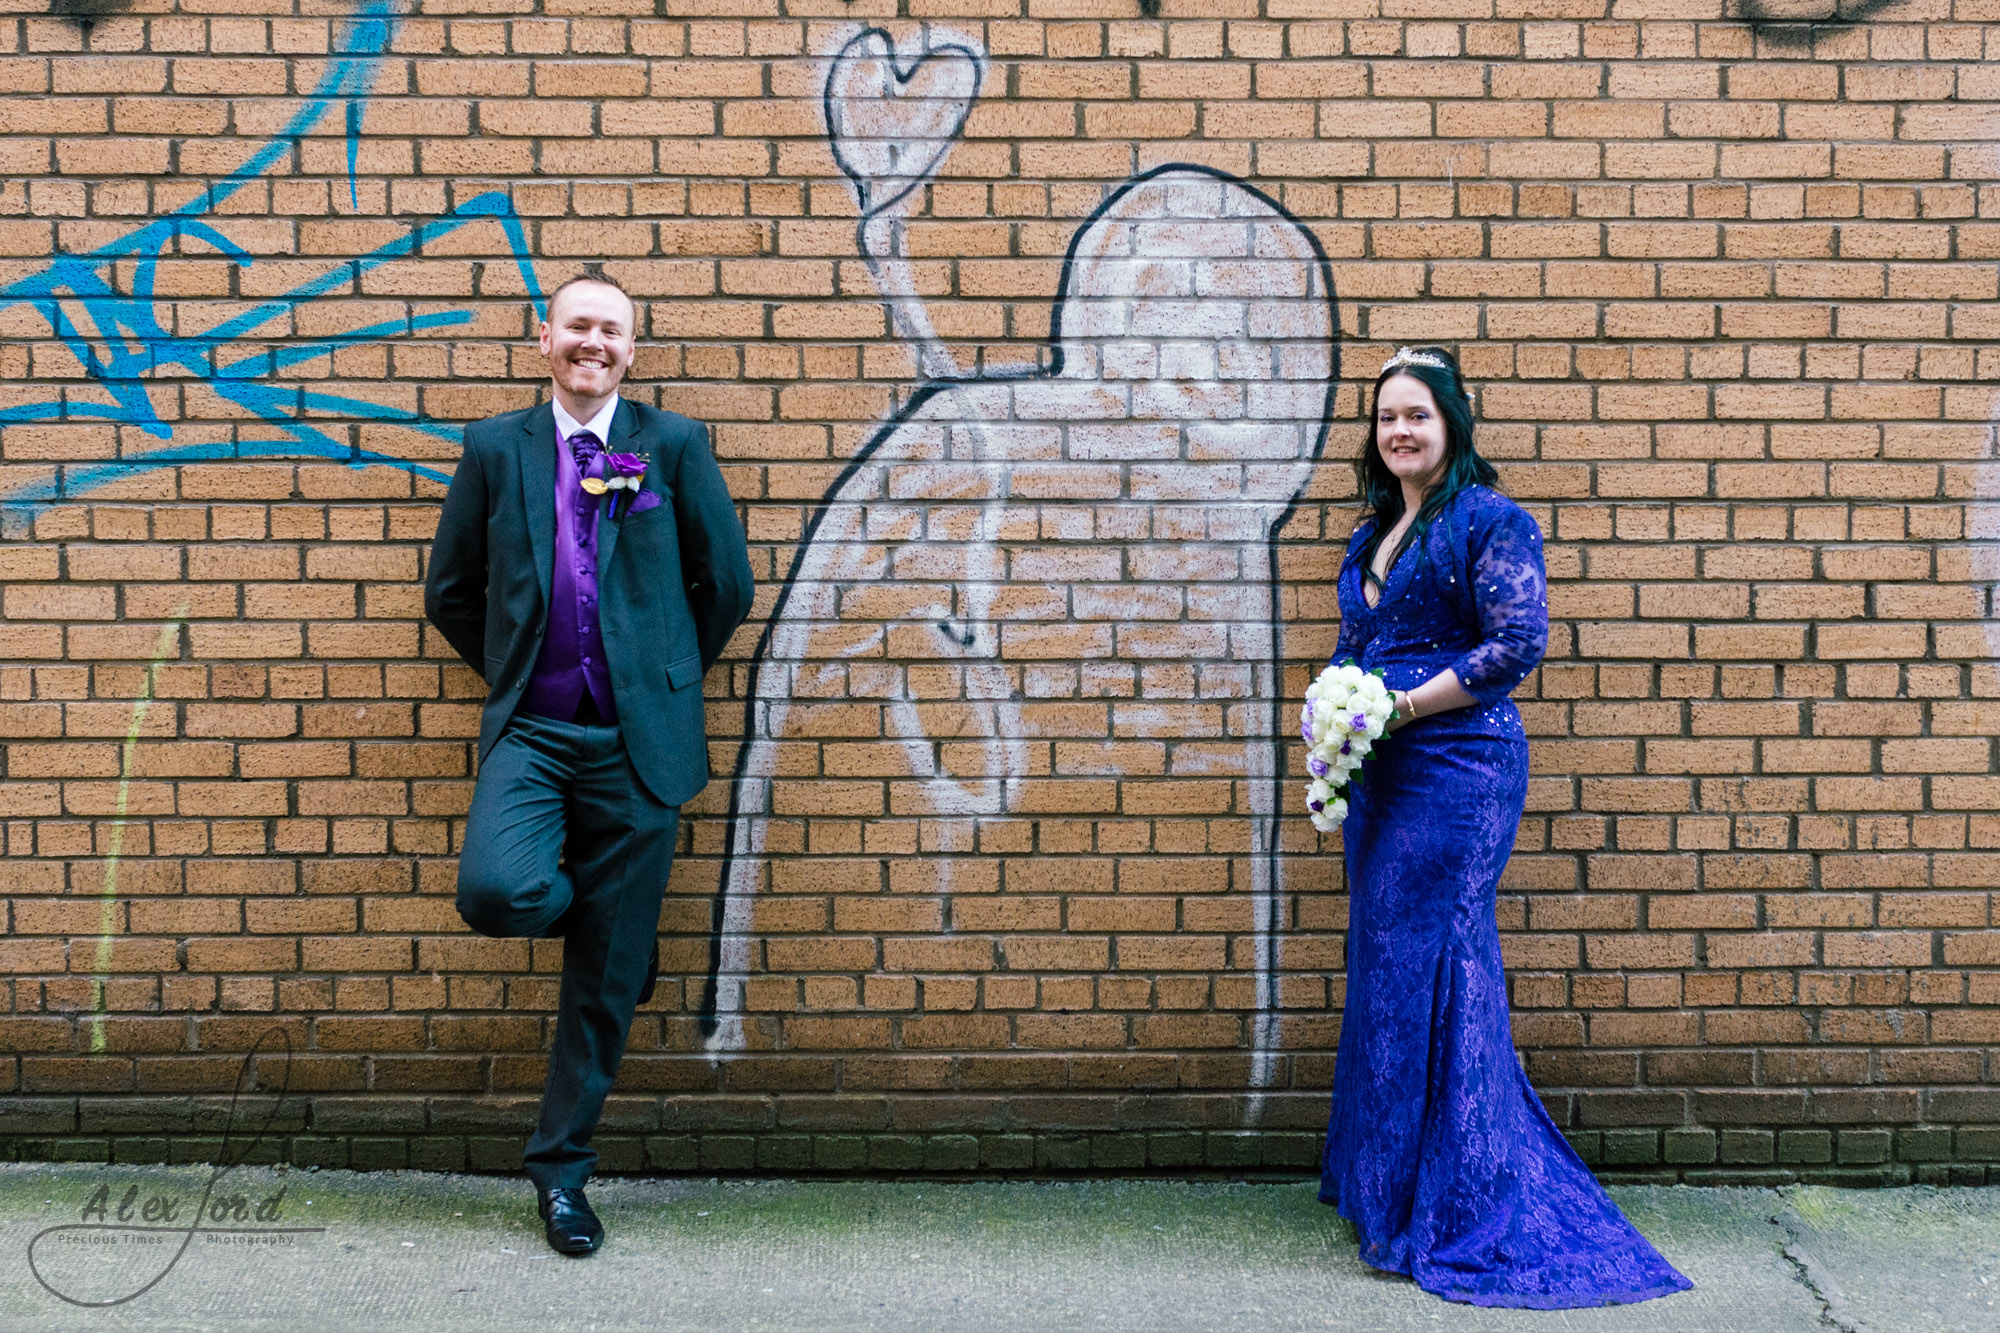 shropshire wedding photography in liverpool city centre